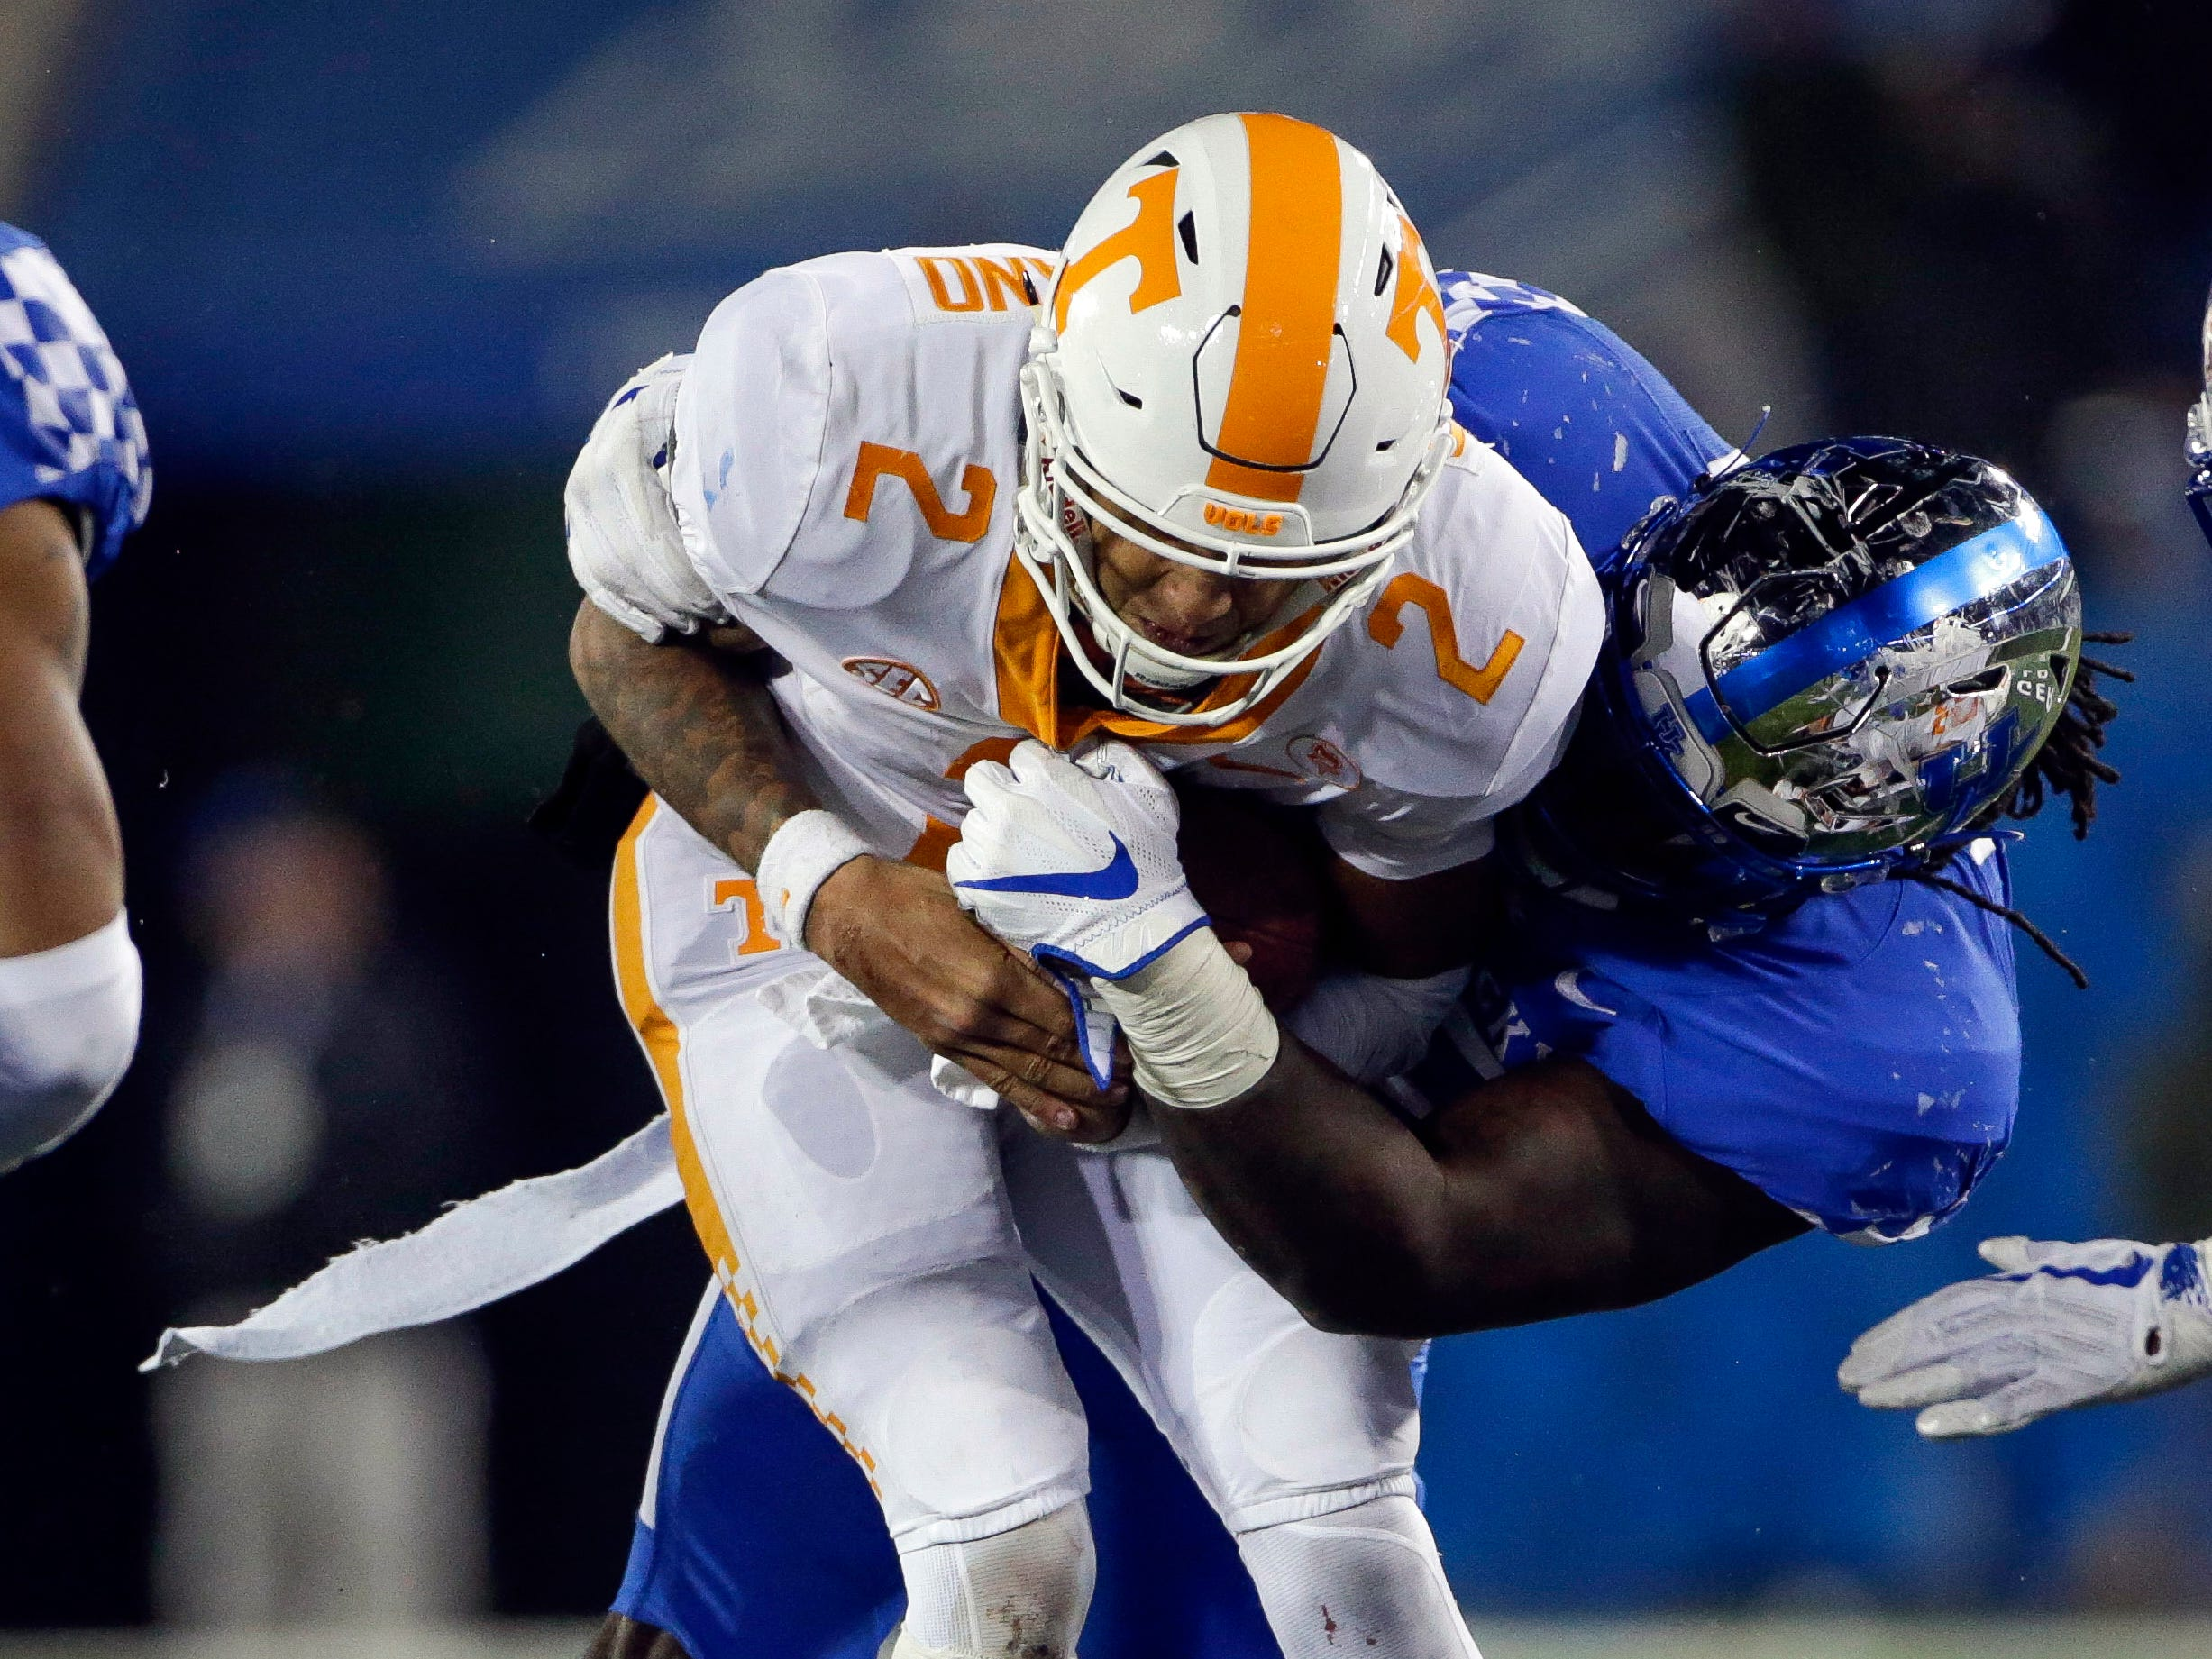 In this Saturday, Oct. 28, 2017, file photo, Kentucky defensive tackle Adrian Middleton sacks Tennessee quarterback Jarrett Guarantano during the second half of an NCAA college football game in Lexington, Ky.